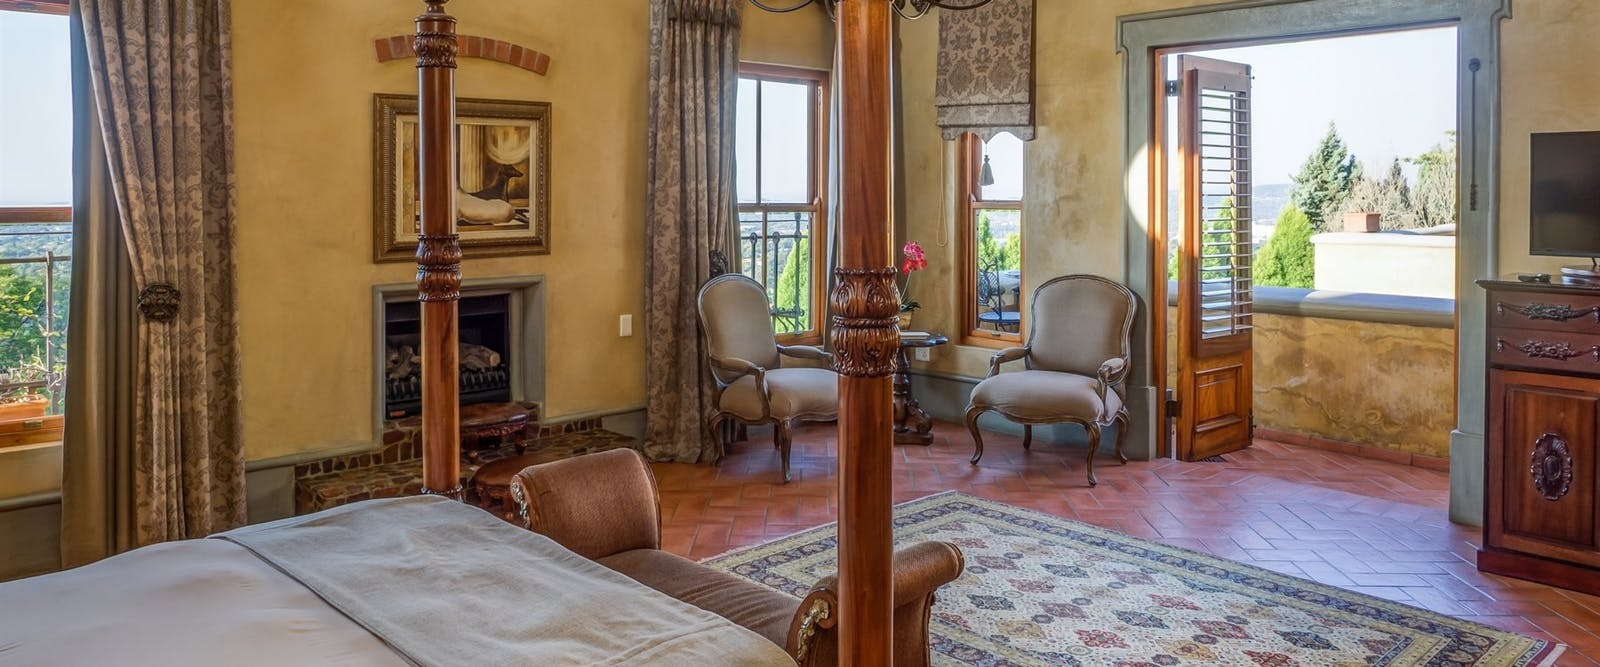 Suite with view to balcony at Castello di Monte, South Africa